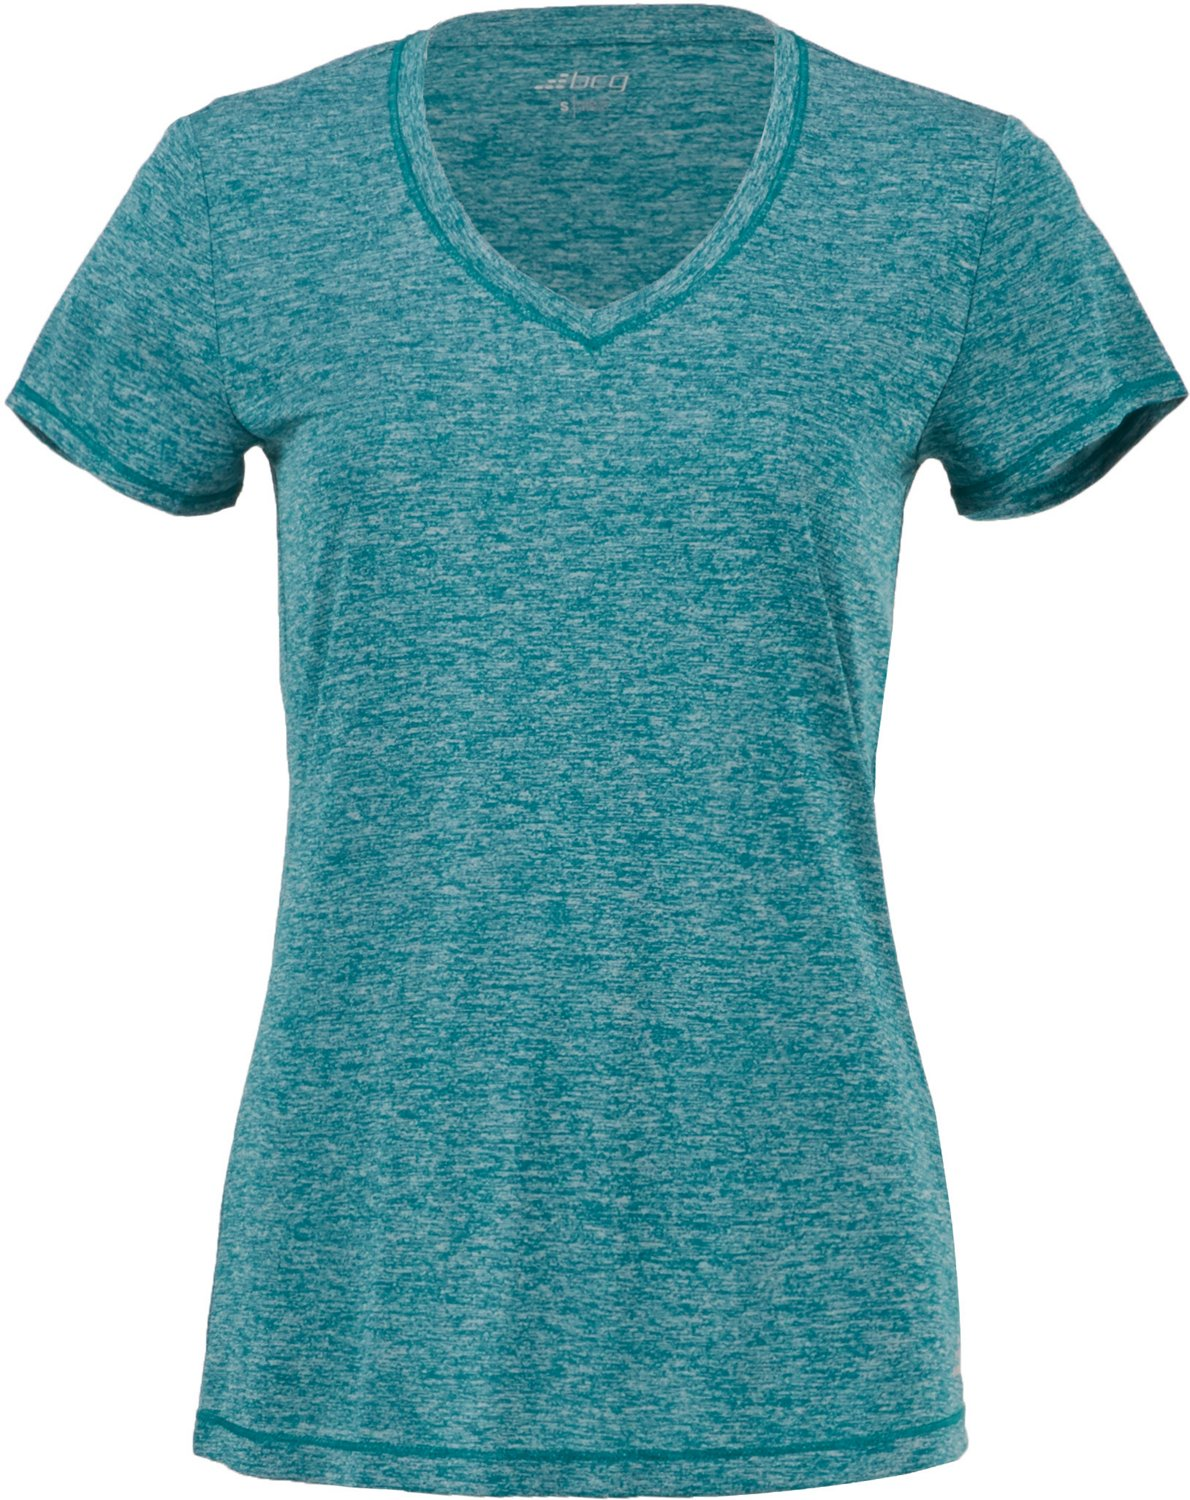 de0bb805 Display product reviews for BCG Women's Heather V-neck Training Tech T-shirt